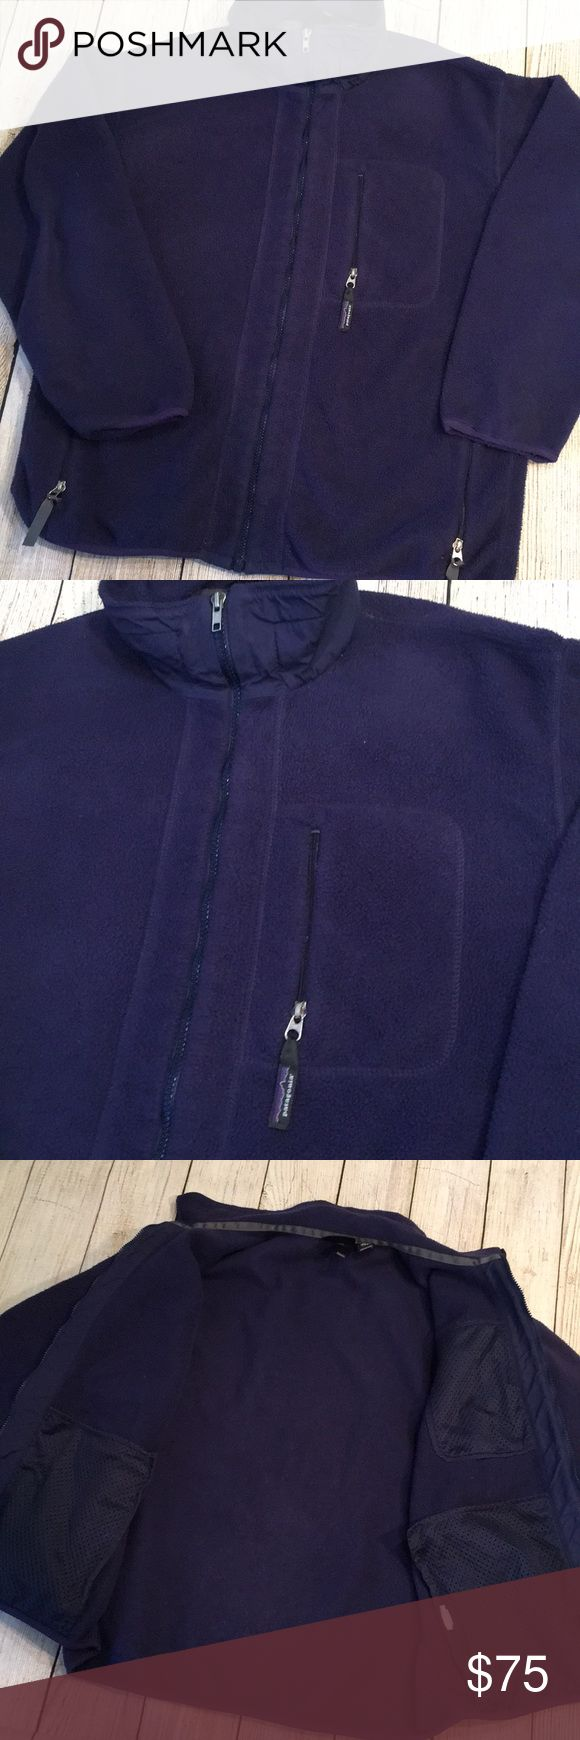 Vintage Patagonia Zip Up Vintage Patagonia dark purple zip up (around 2003) in great gently warn condition. Very minor pilling.  Please no low ball offers, I work hard to find, clean, inspect, mend and post all unique products, I am working to pay off school loans and always sell my products at great prices 😊 Patagonia Jackets & Coats